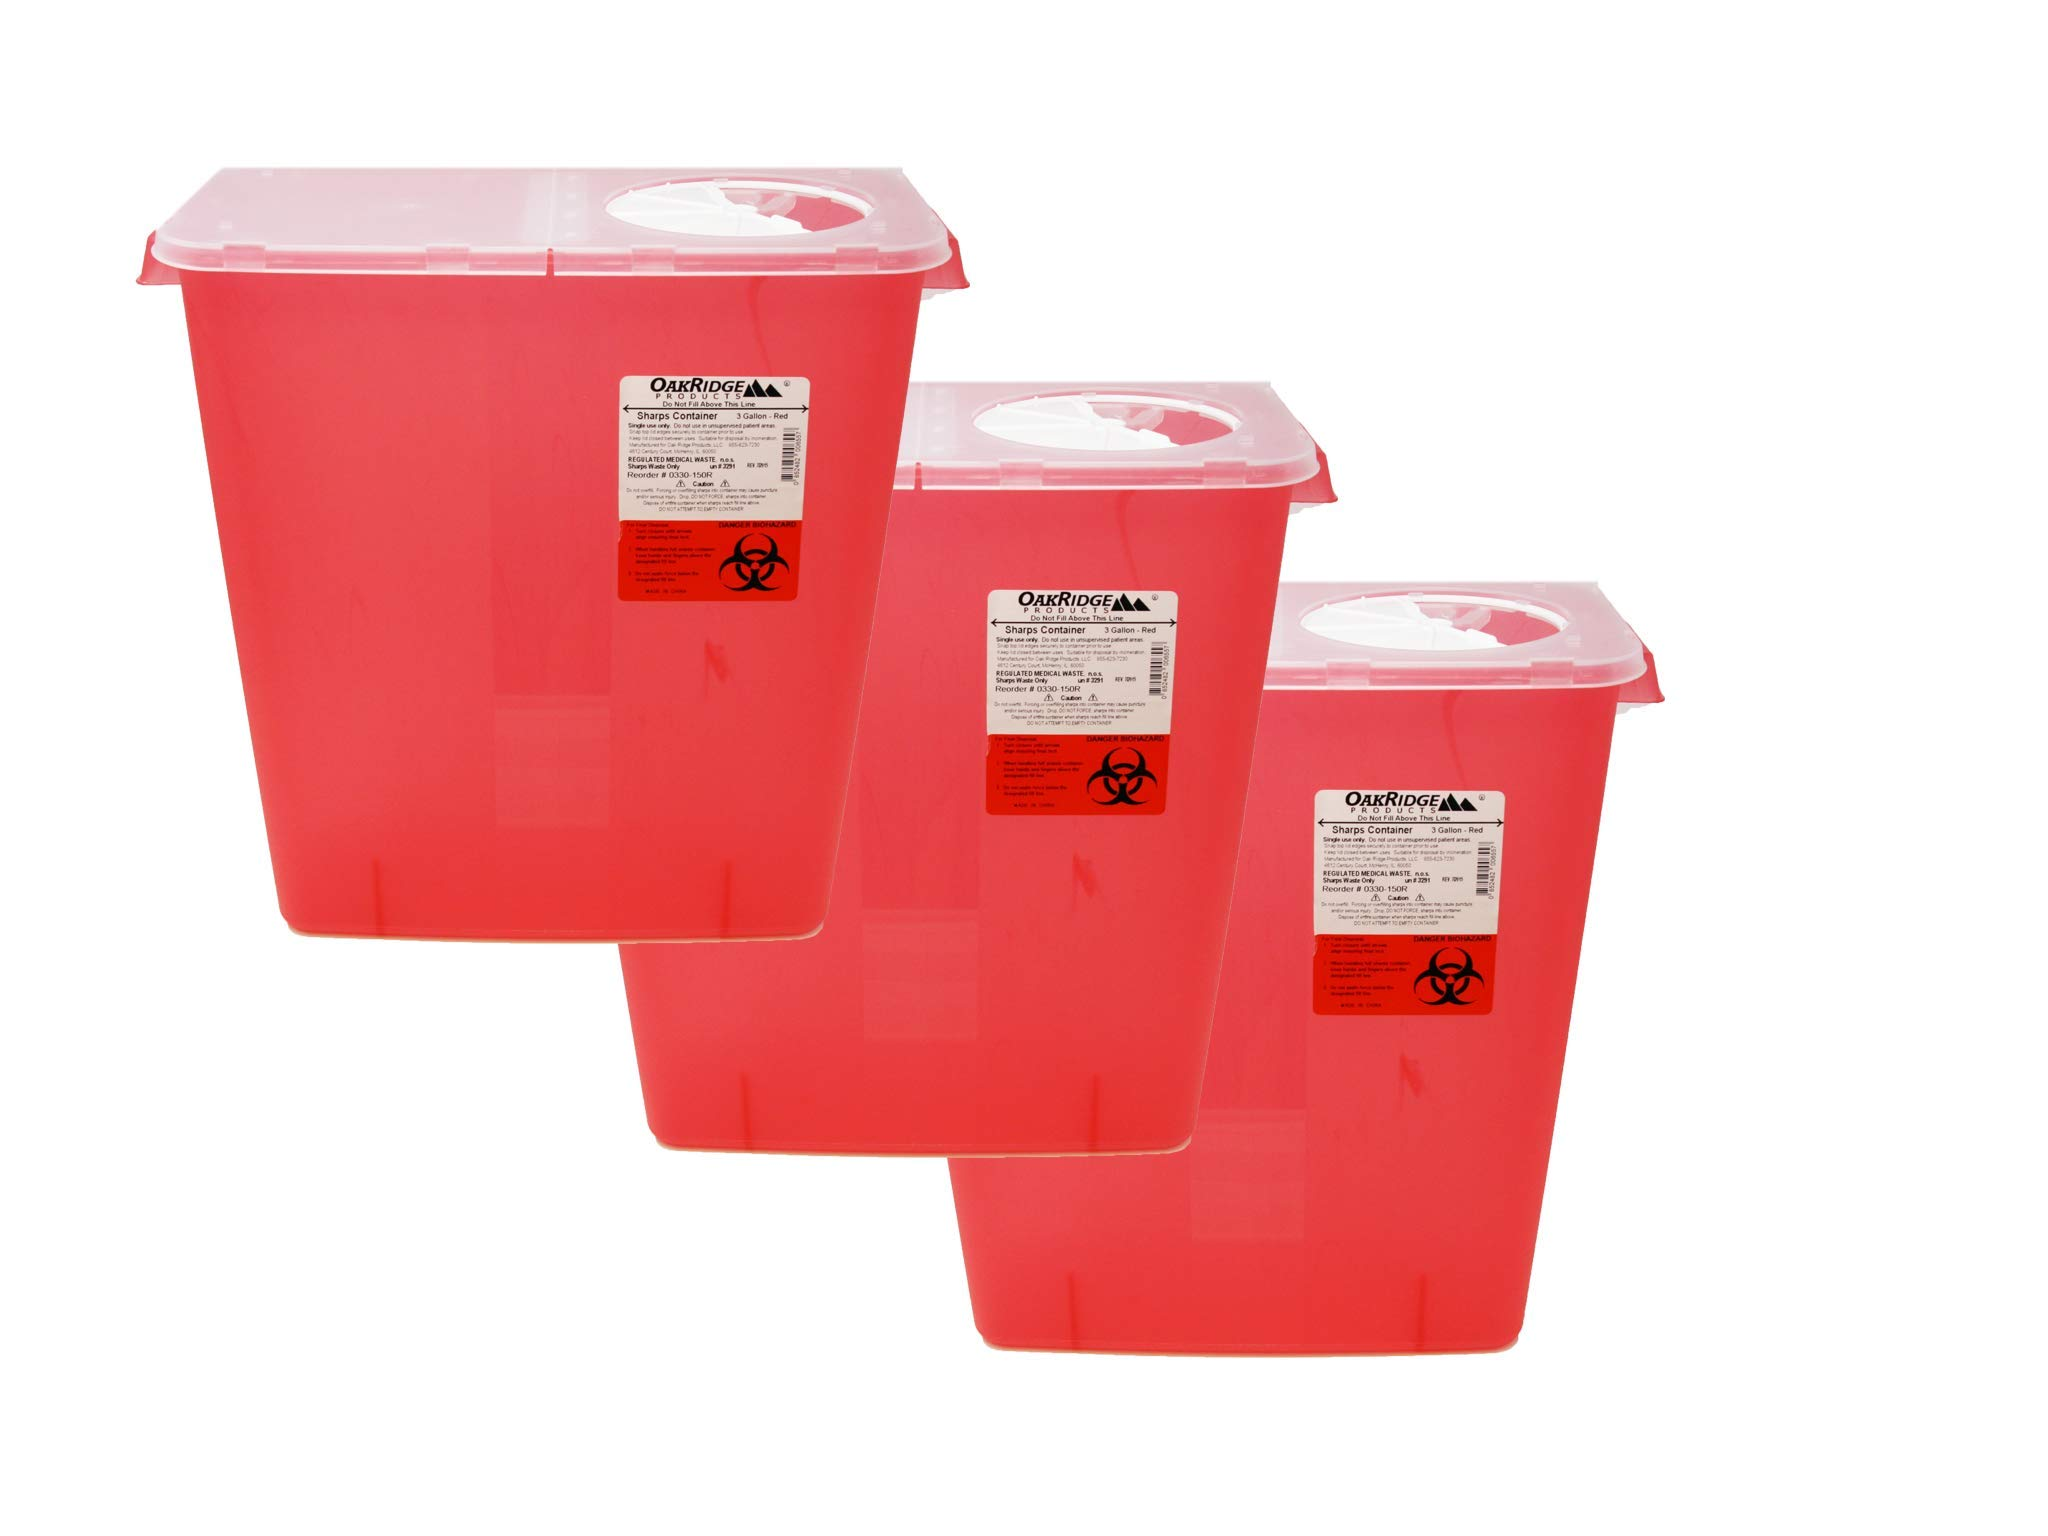 Oakridge 3 Gallon Size (Pack of 3) Needle and Syringe Disposal Container by OakRidge Products